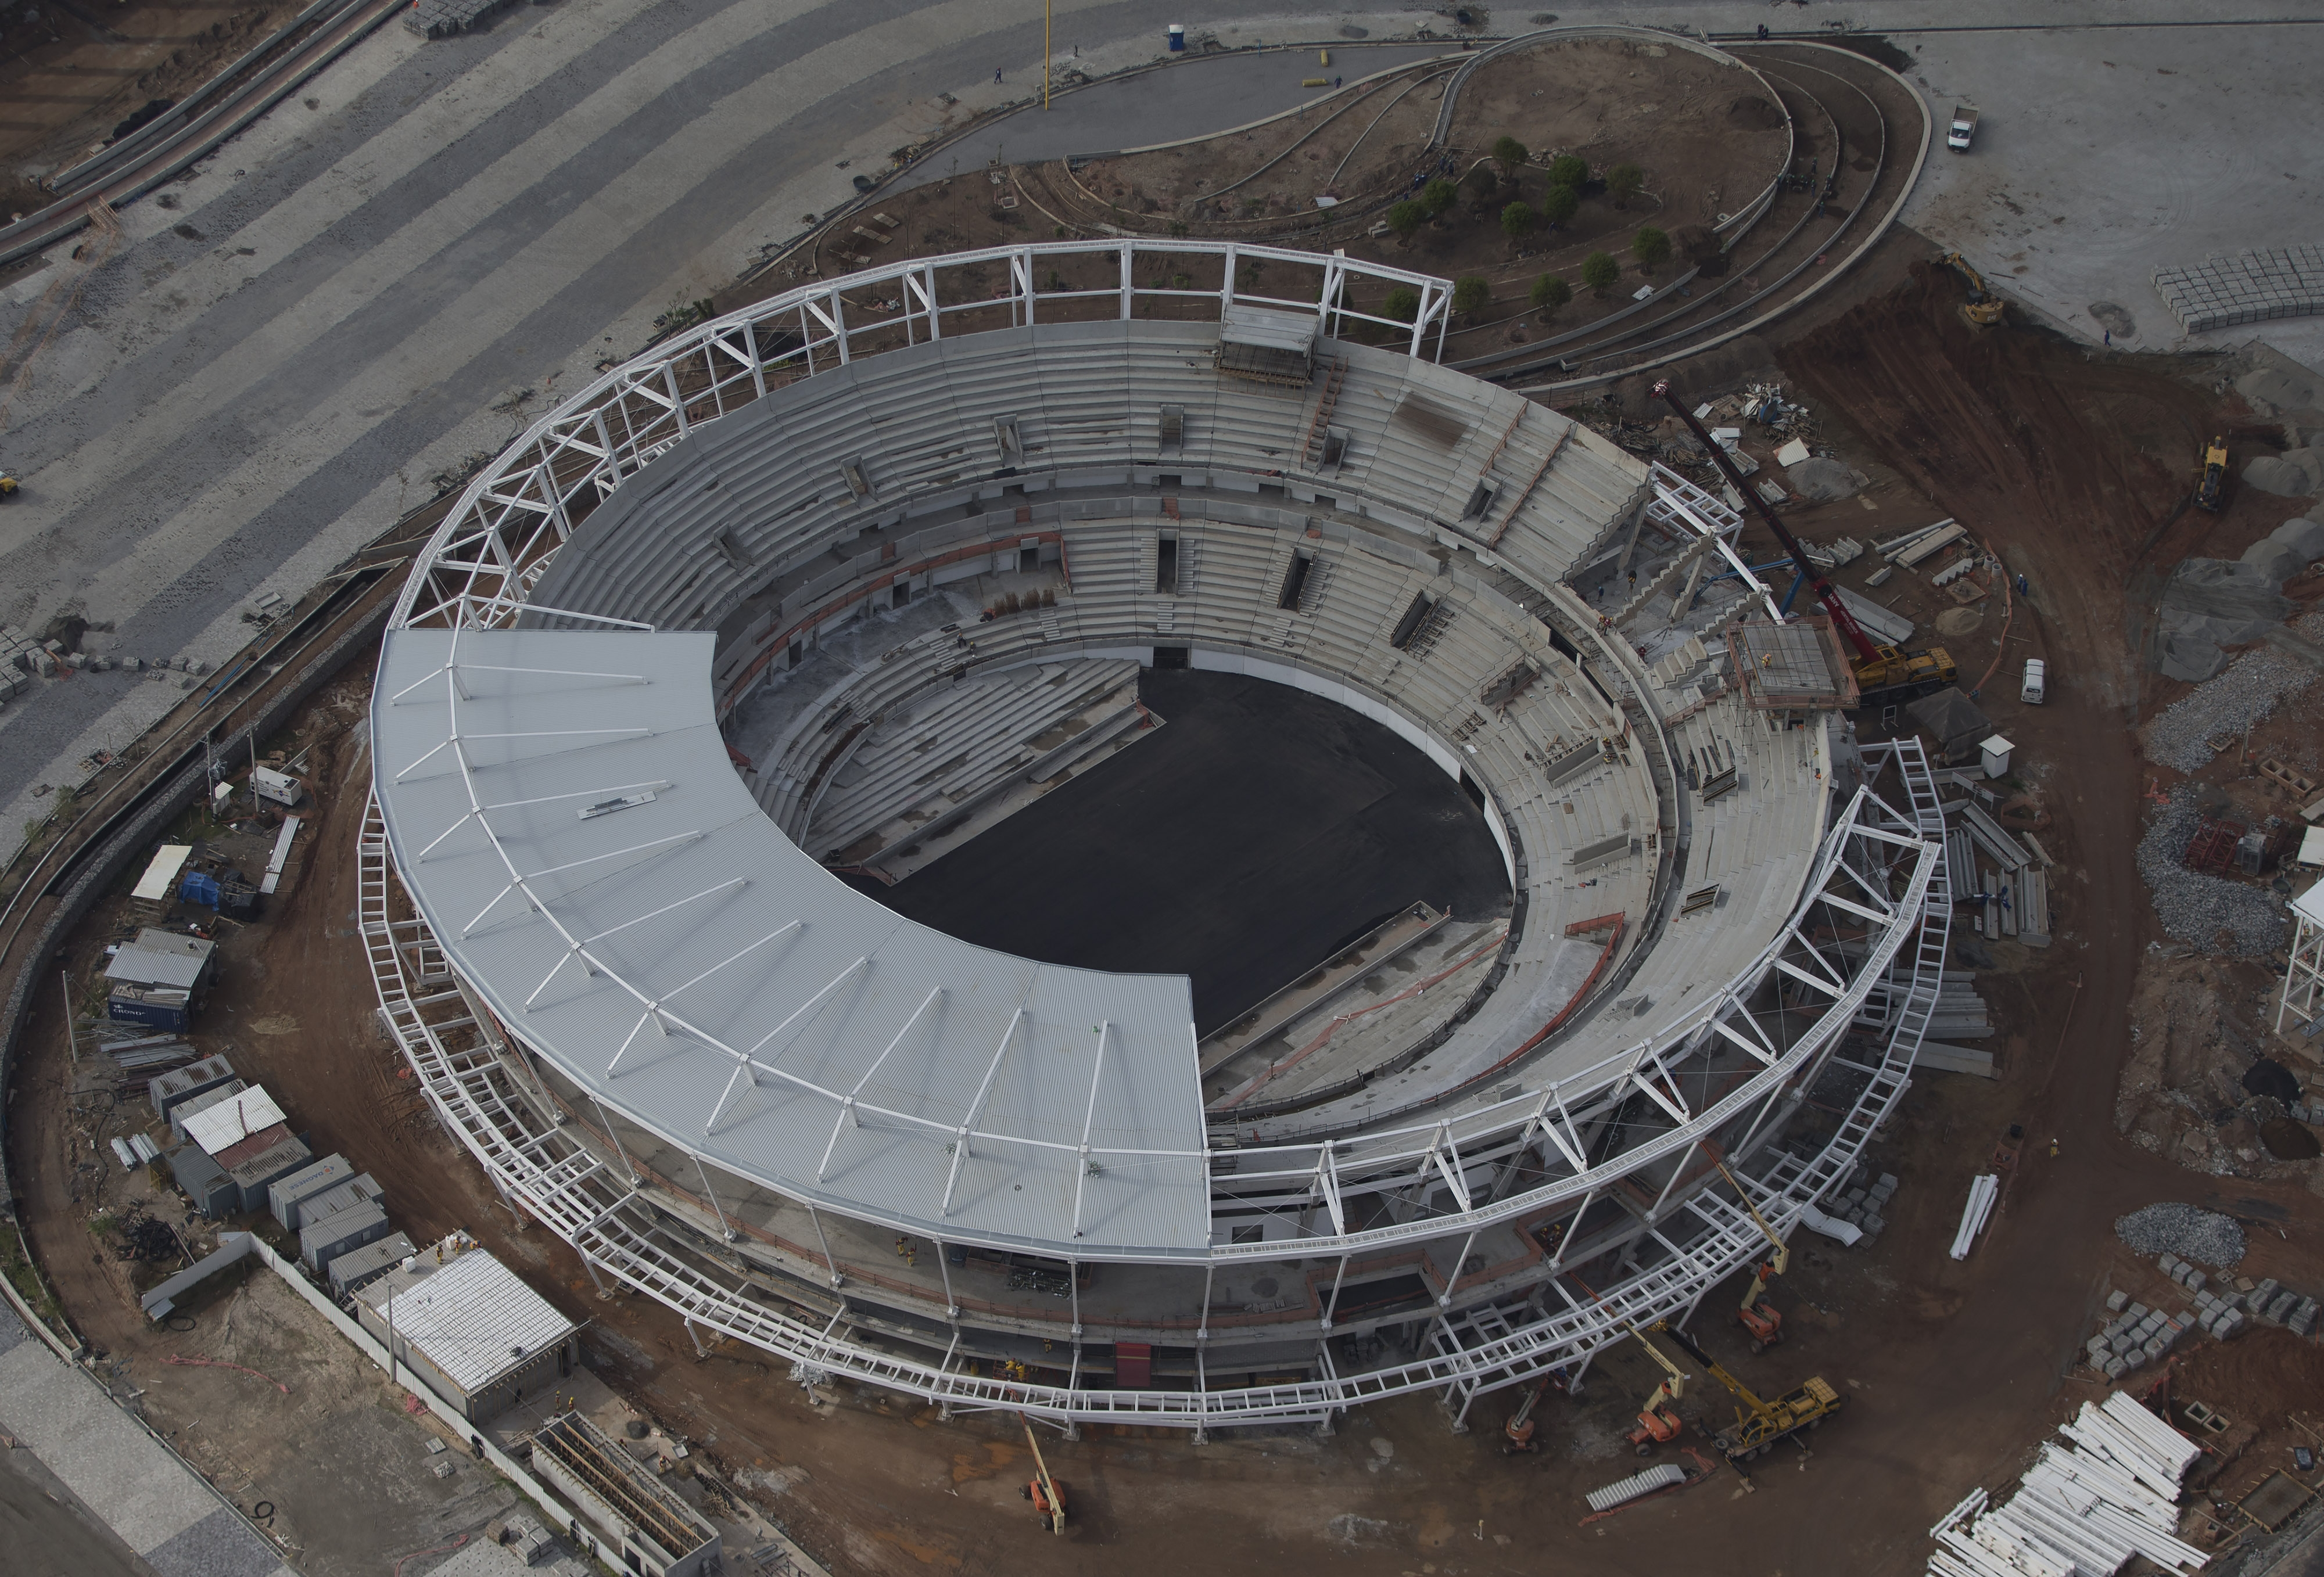 Construction continues at the Tennis Center at the Olympic Park for the 2016 Olympics in Rio de Janeiro, Brazil, Monday, July 27, 2015. A last-minute rush seems inevitable, and late work is sure to drive up costs. (AP Photo/Leo Correa)